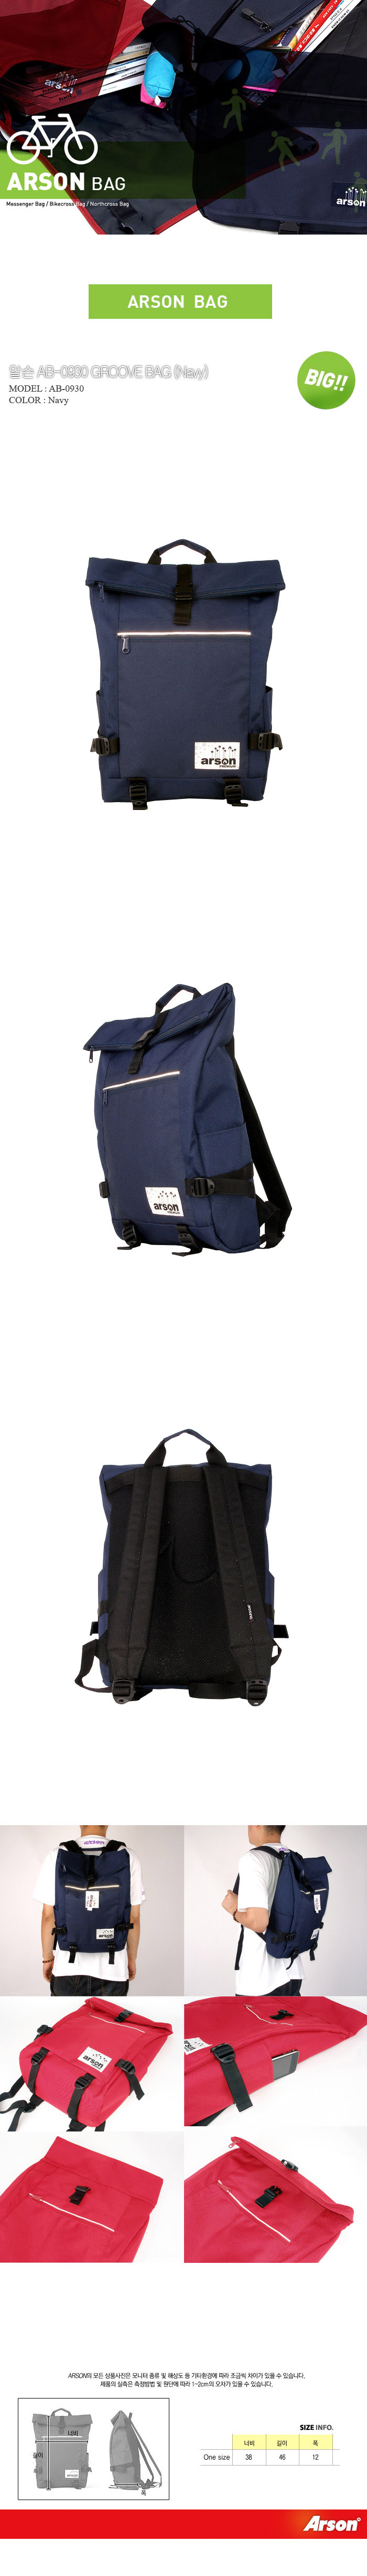 [ ARSON ] AB-0930 (Navy)/Backpack School Bag